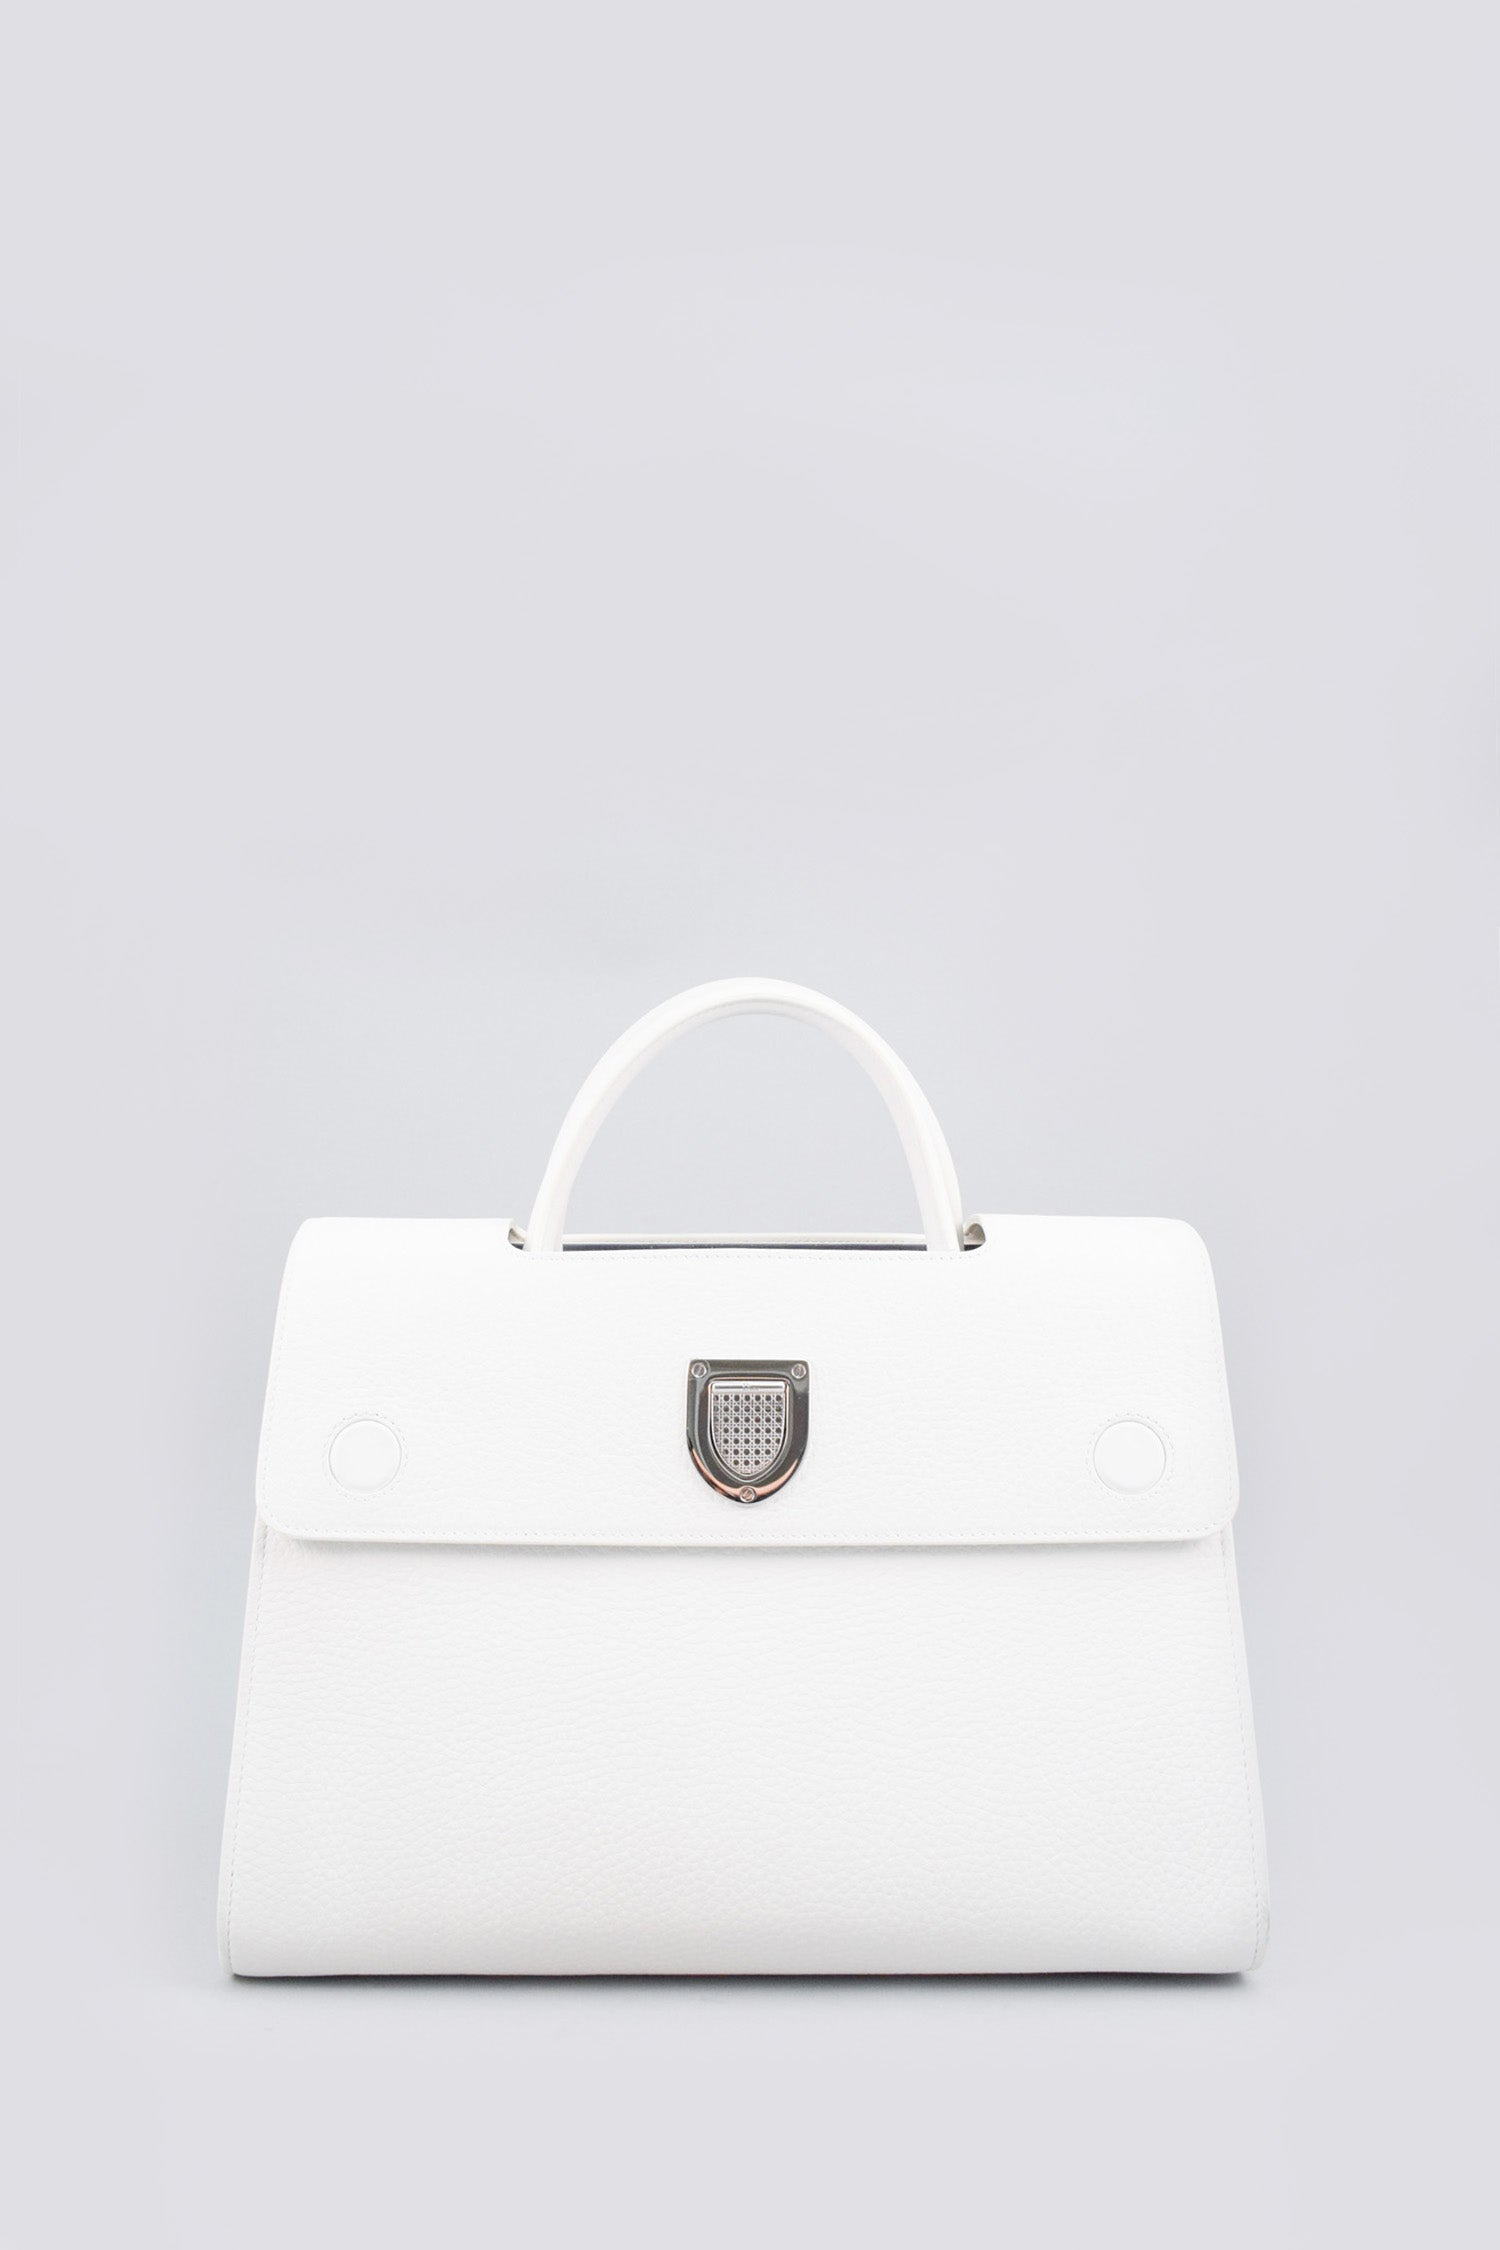 Christian Dior White Grained Leather Diorever Medium Handbag